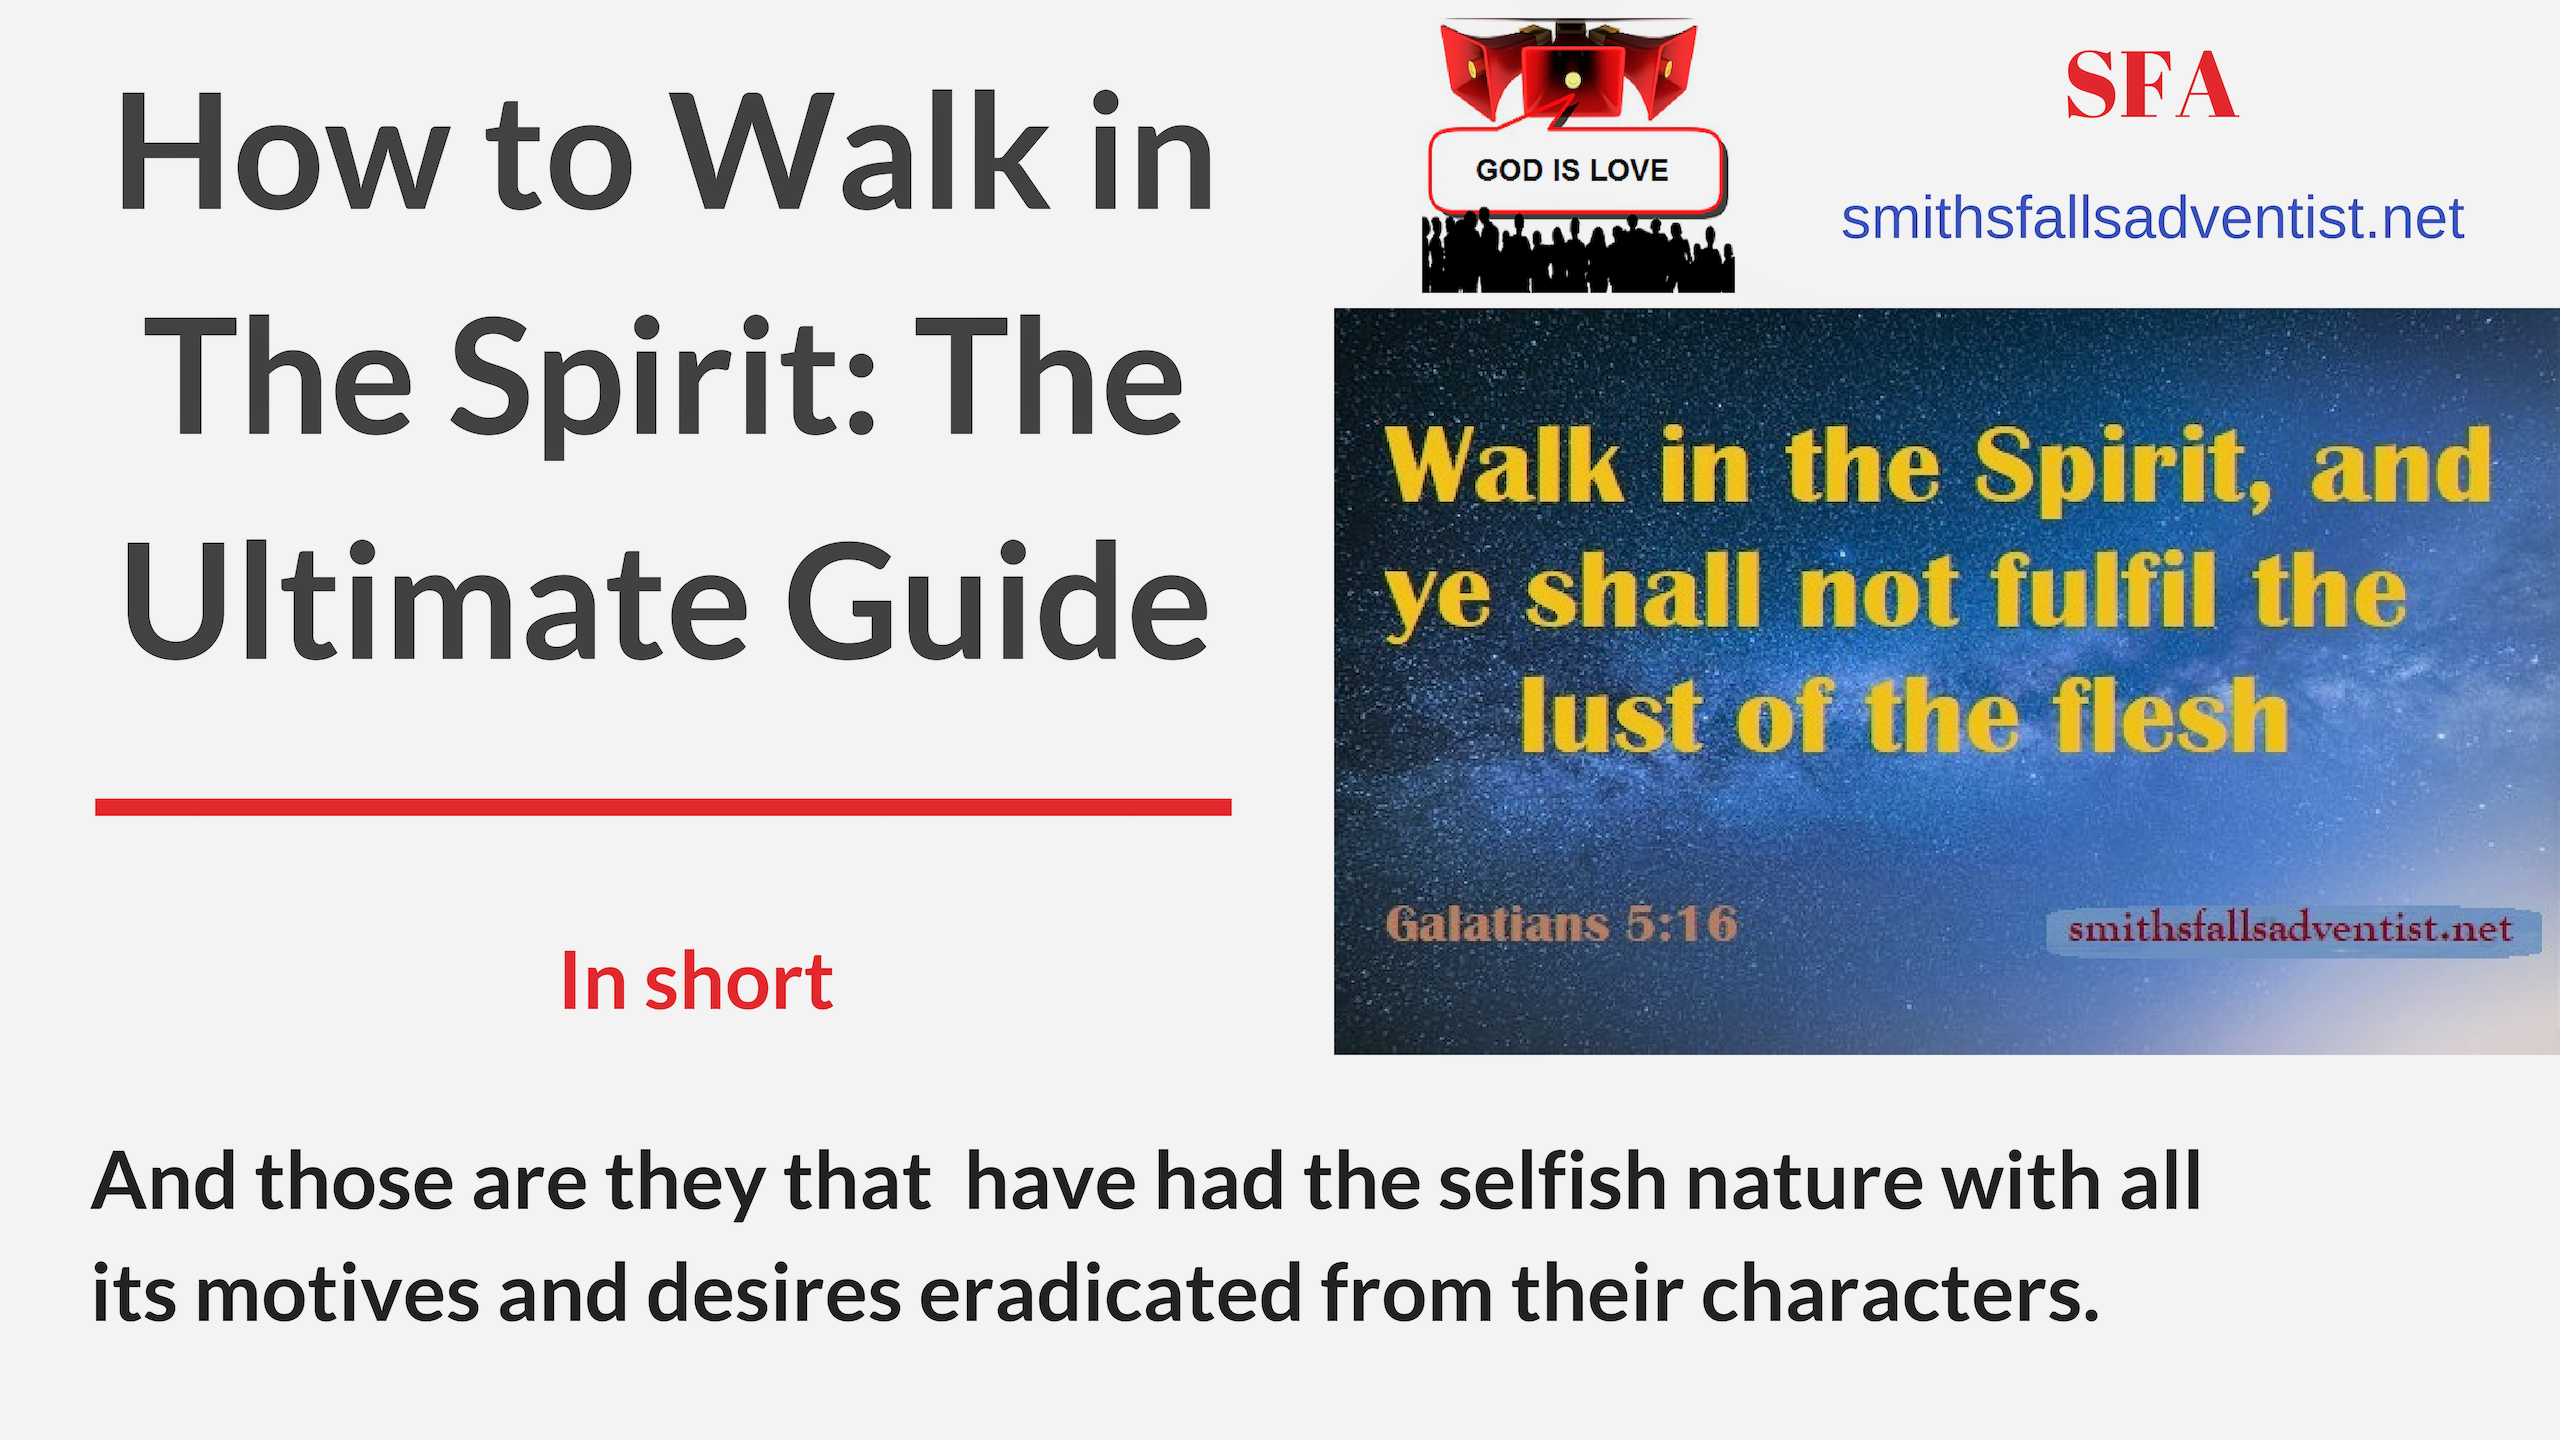 Title-How-to-Walk-in-The-Spirit-The-Ultimate-Guide-text-logo